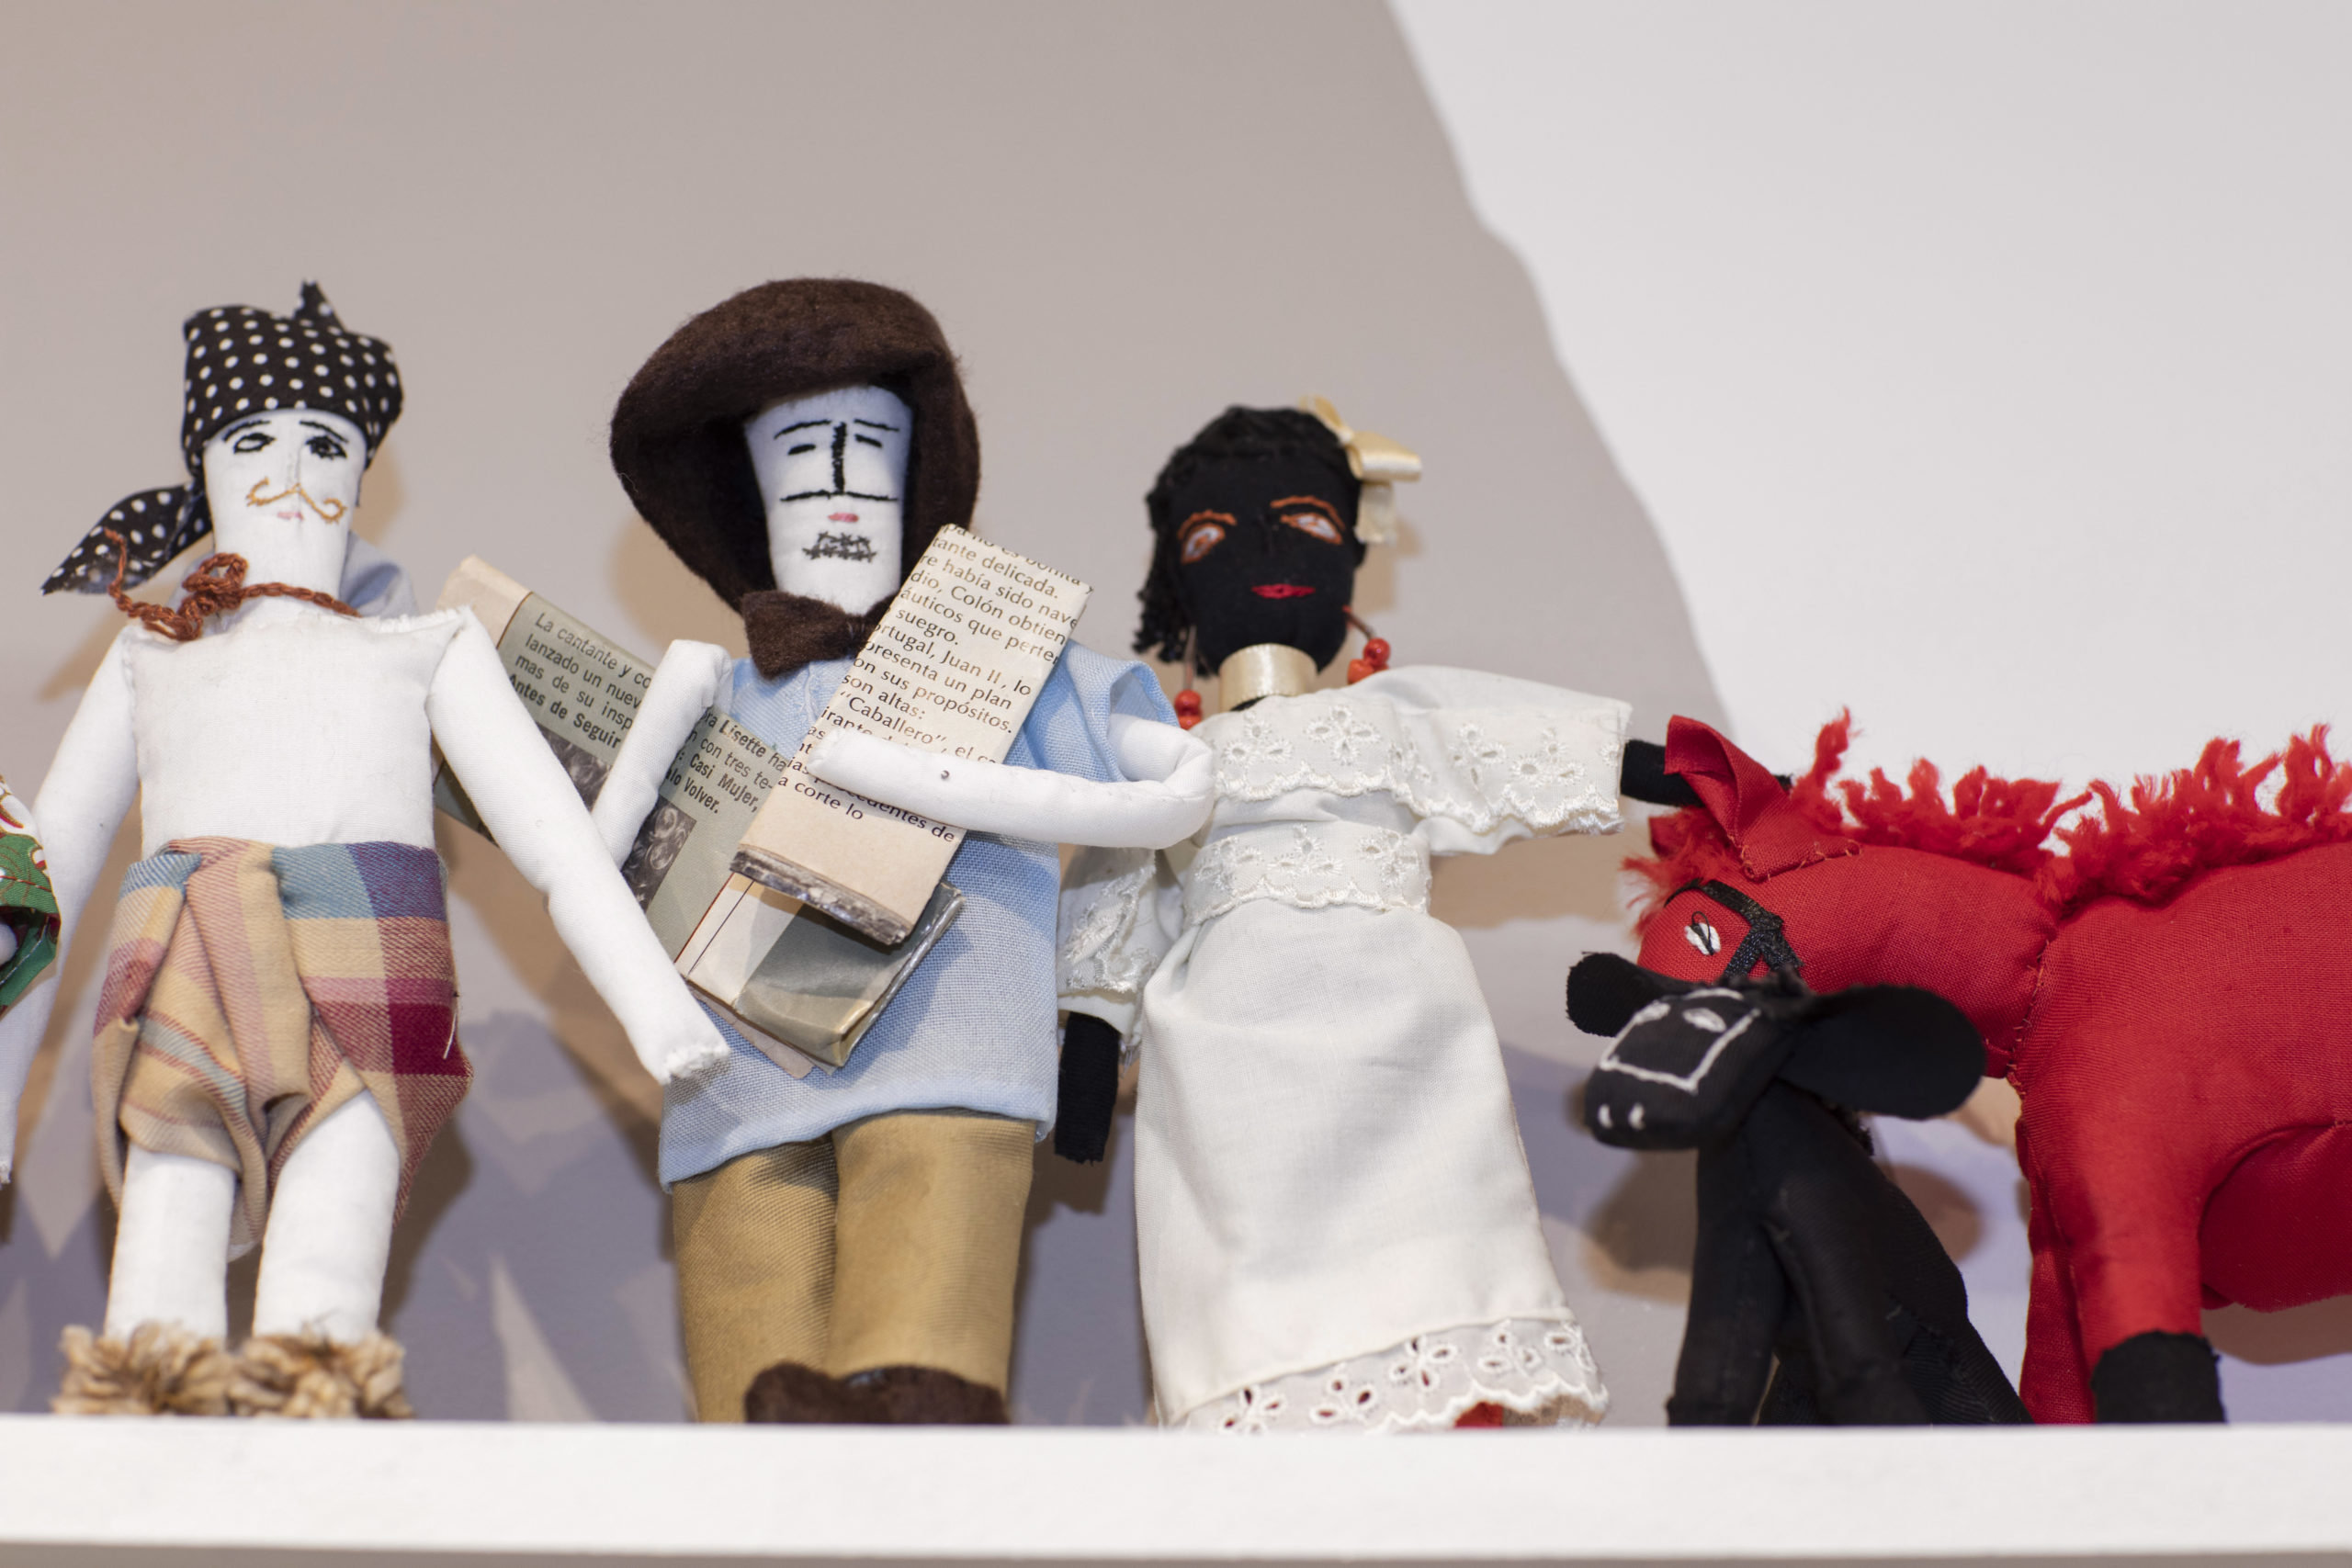 Three rag dolls stand together on a shelf with a small red rag donkey